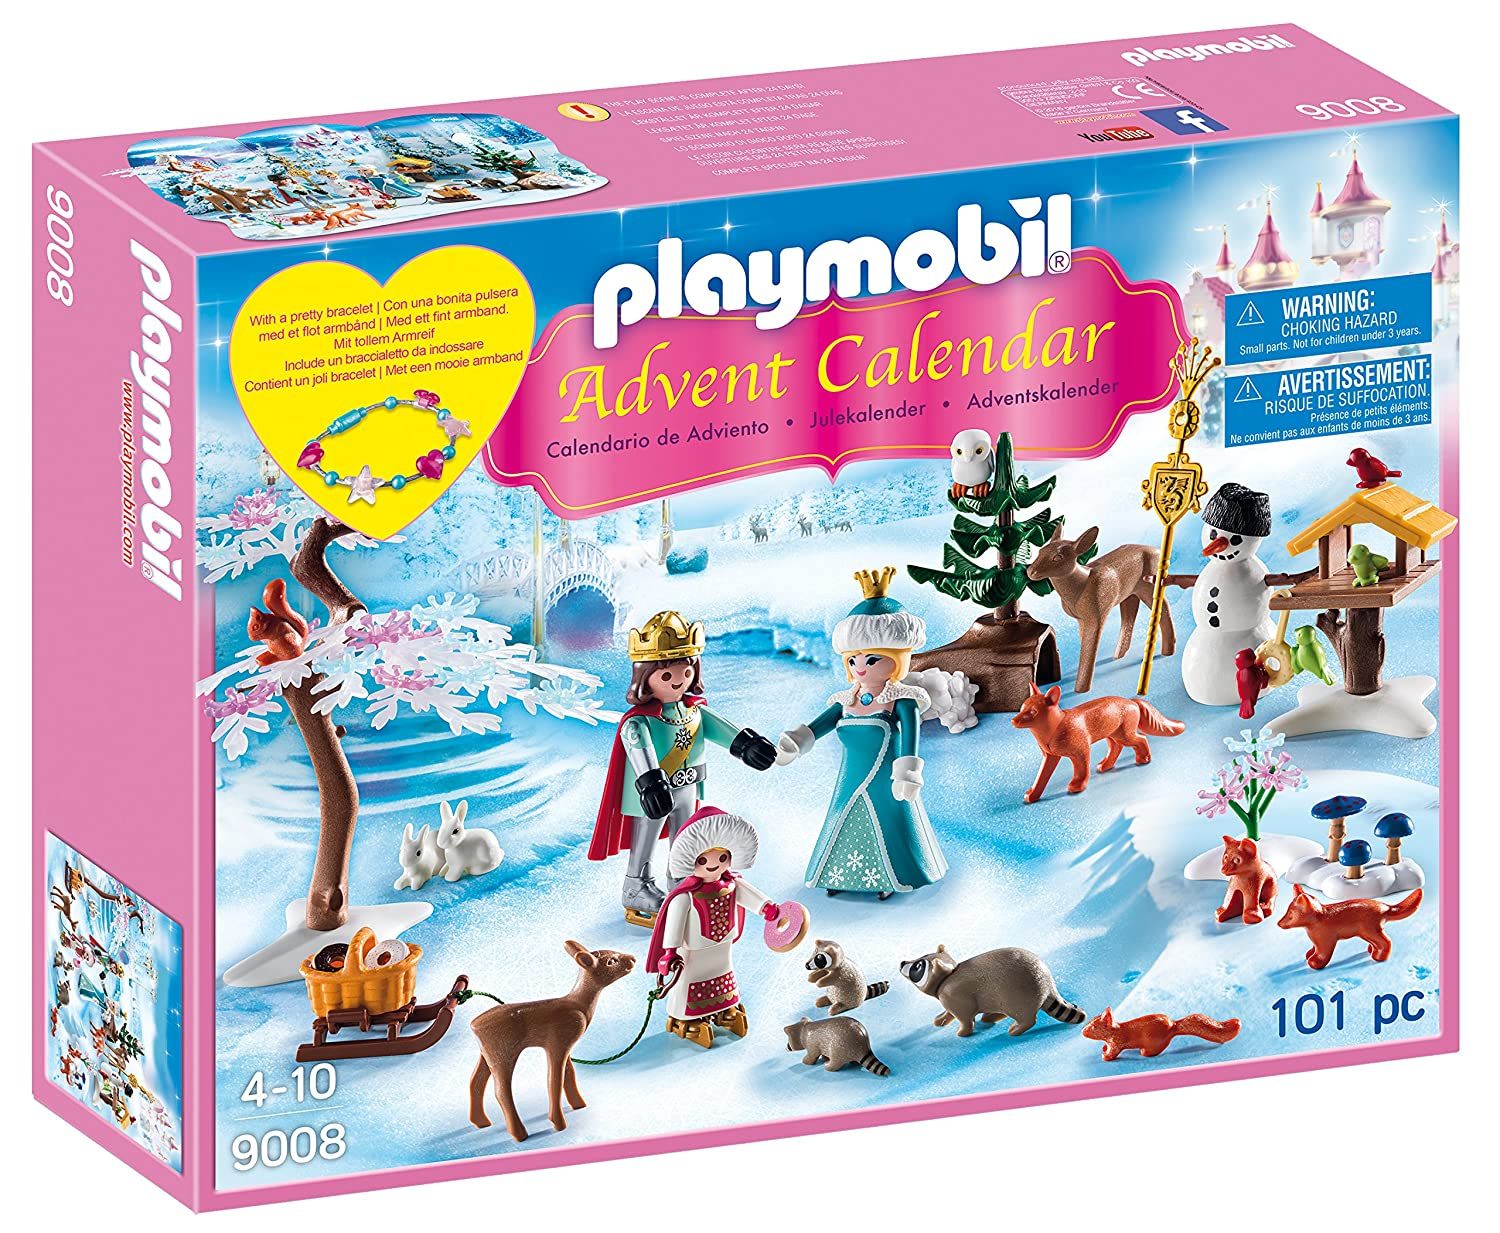 Playmobil Advent Calendar, Royal Ice Skating Trip with a Children's Bracelet 9008